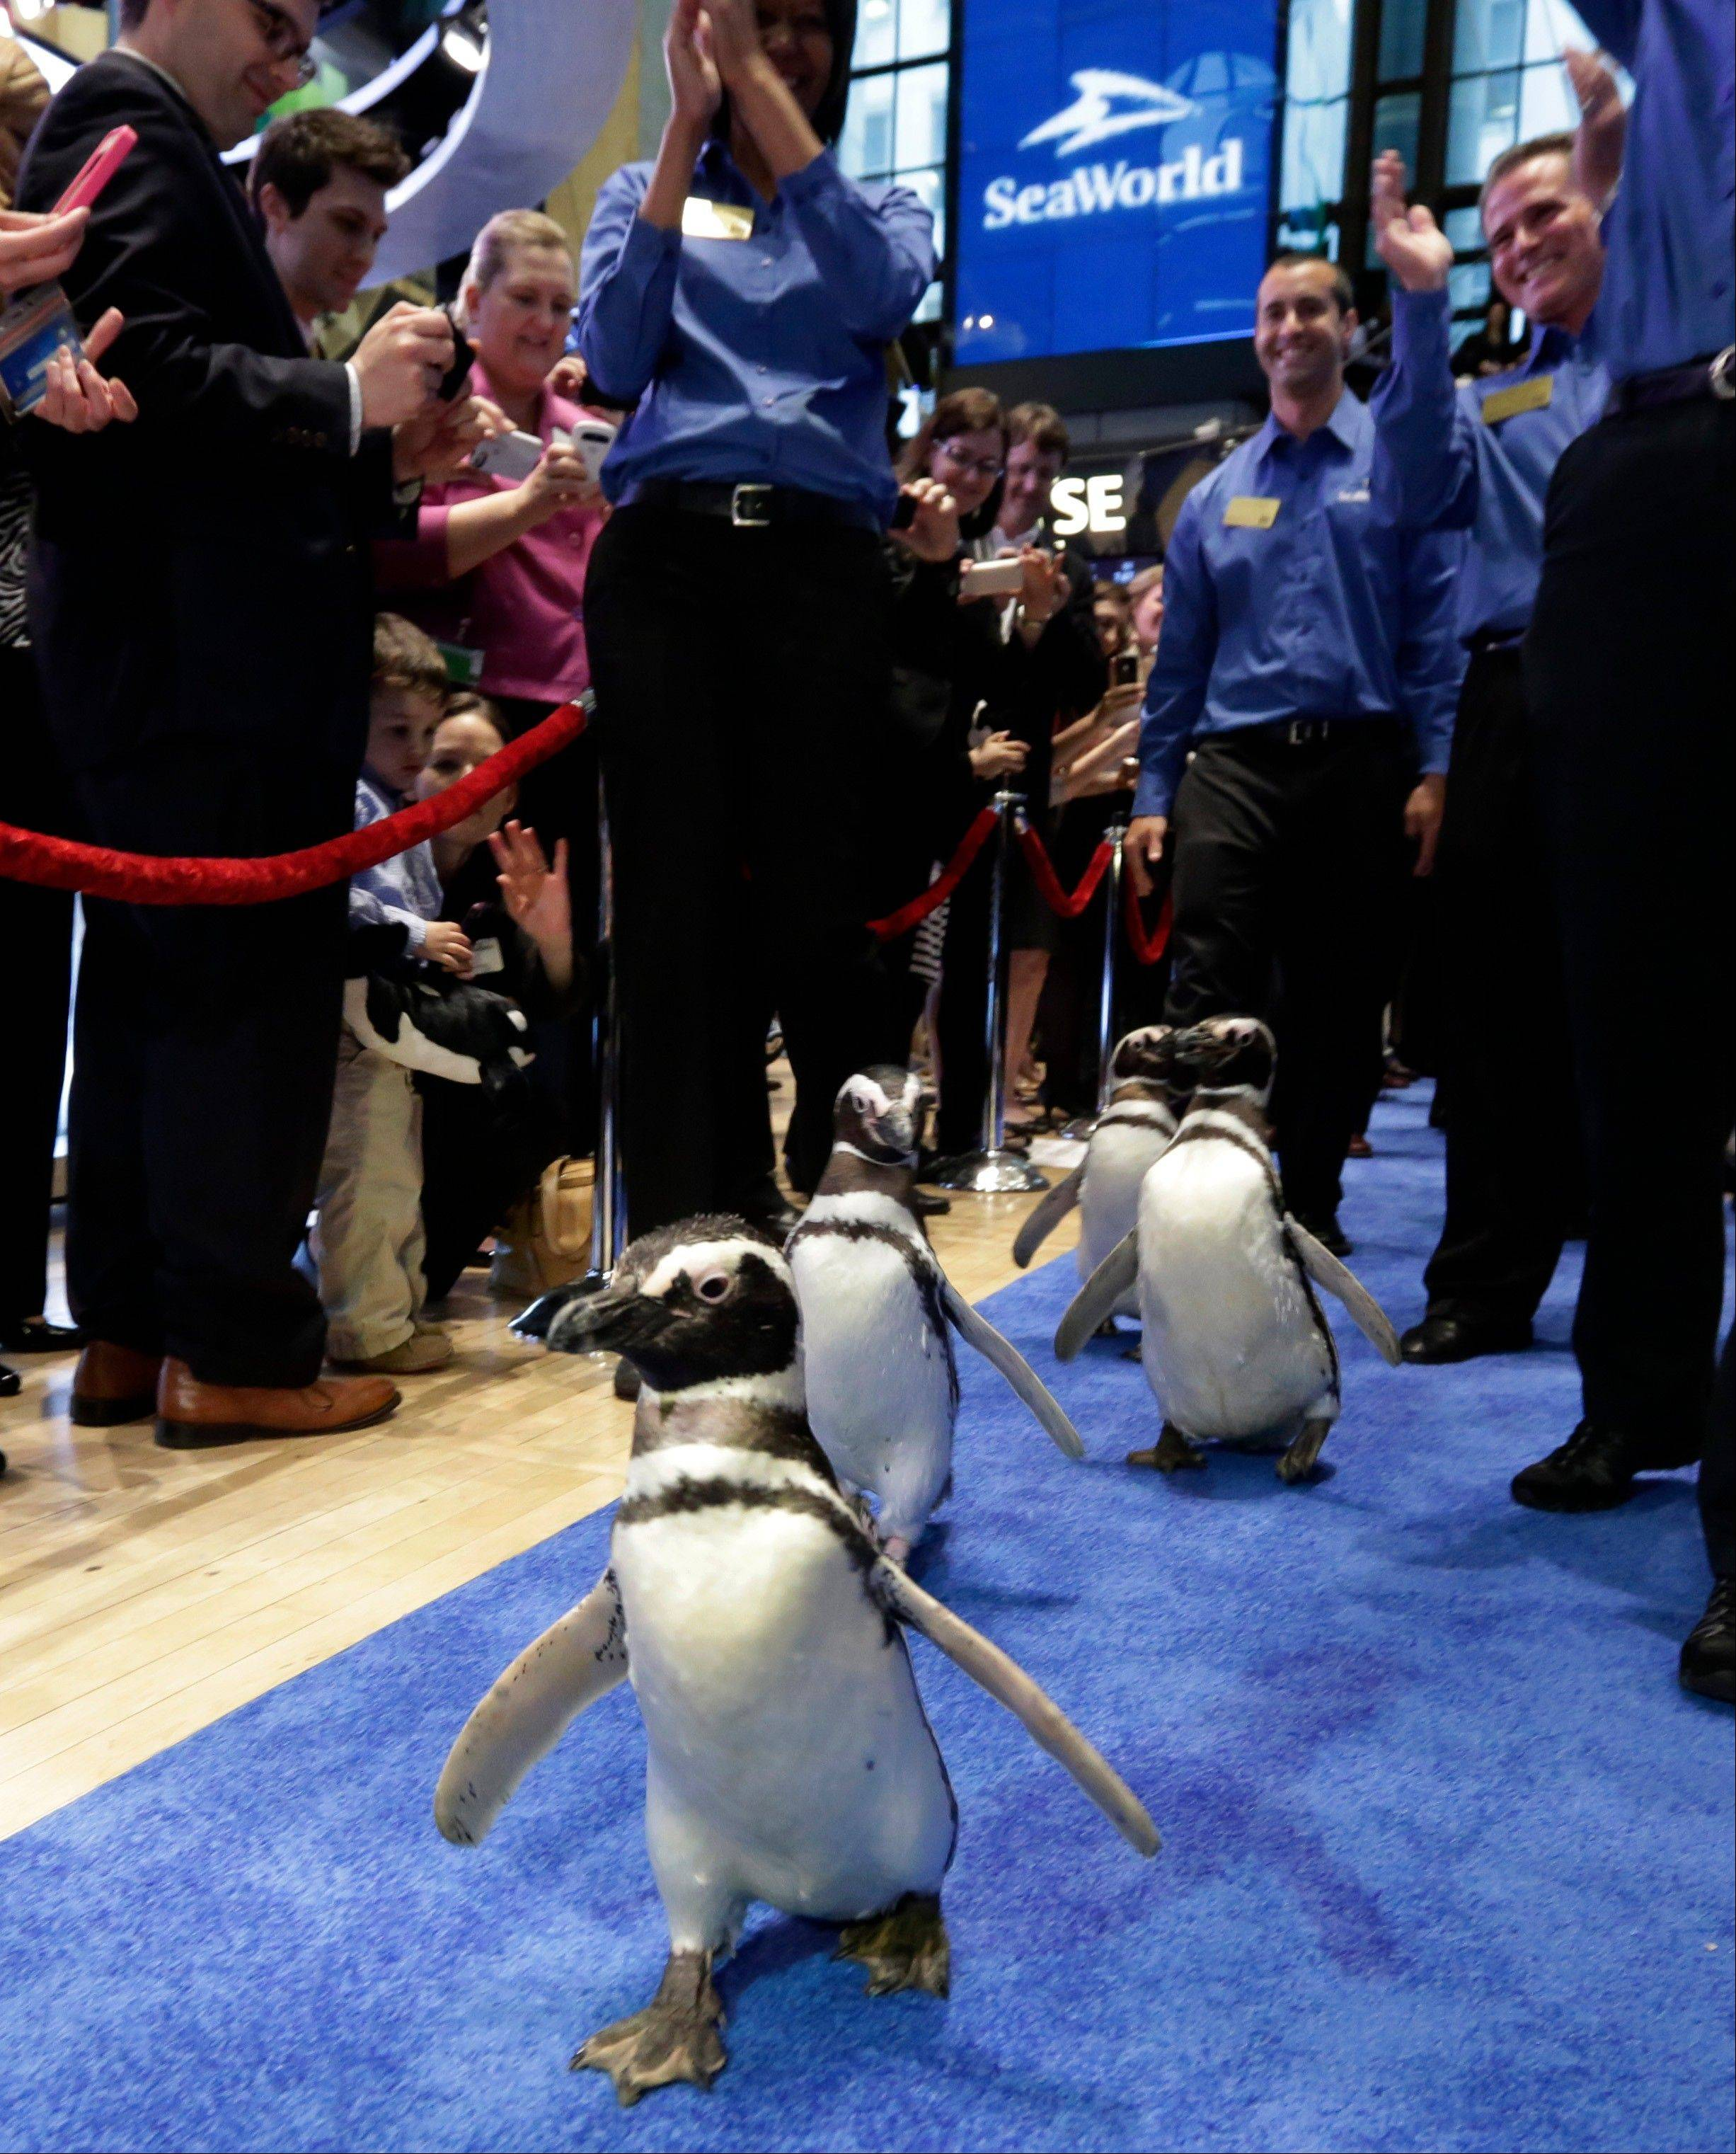 Penguins from SeaWorld are escorted Friday by their handlers on the floor of the New York Stock Exchange during the company�s IPO.